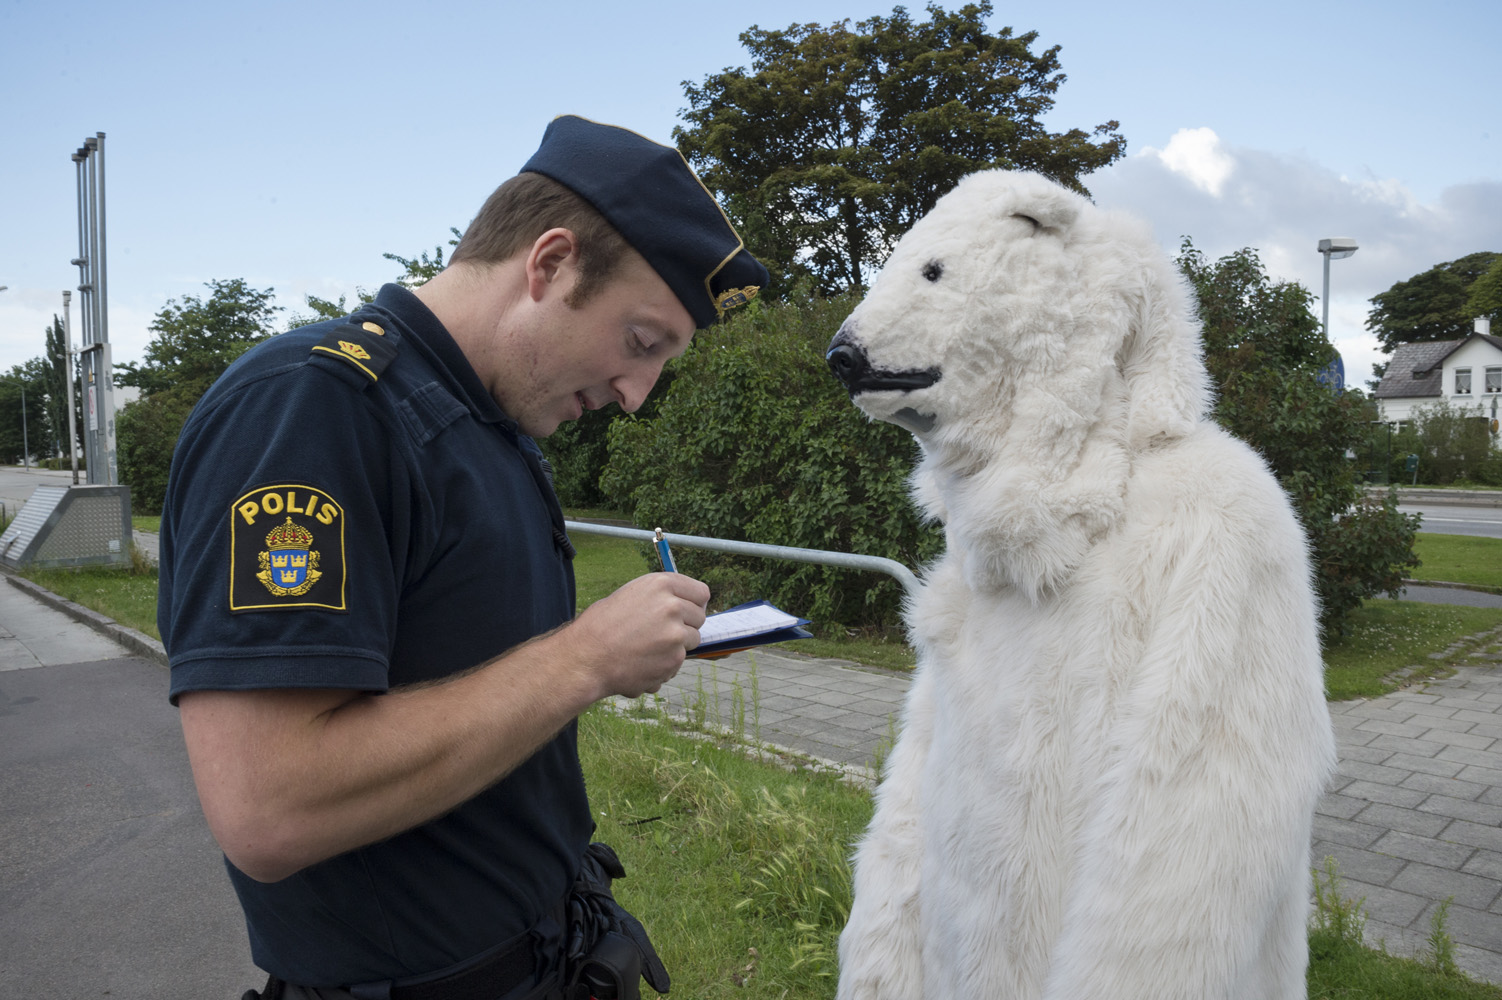 Malmö, Sweden, July 18, 2012. A Greenpeace activist in Polar bear suit being interrogated by the police during a protest at a Shell gas station in Malmoe Sweden. The activist are demonstrating against Shell's plan to drill for oil in the Arctic seas off the coast of Alaska this summer.